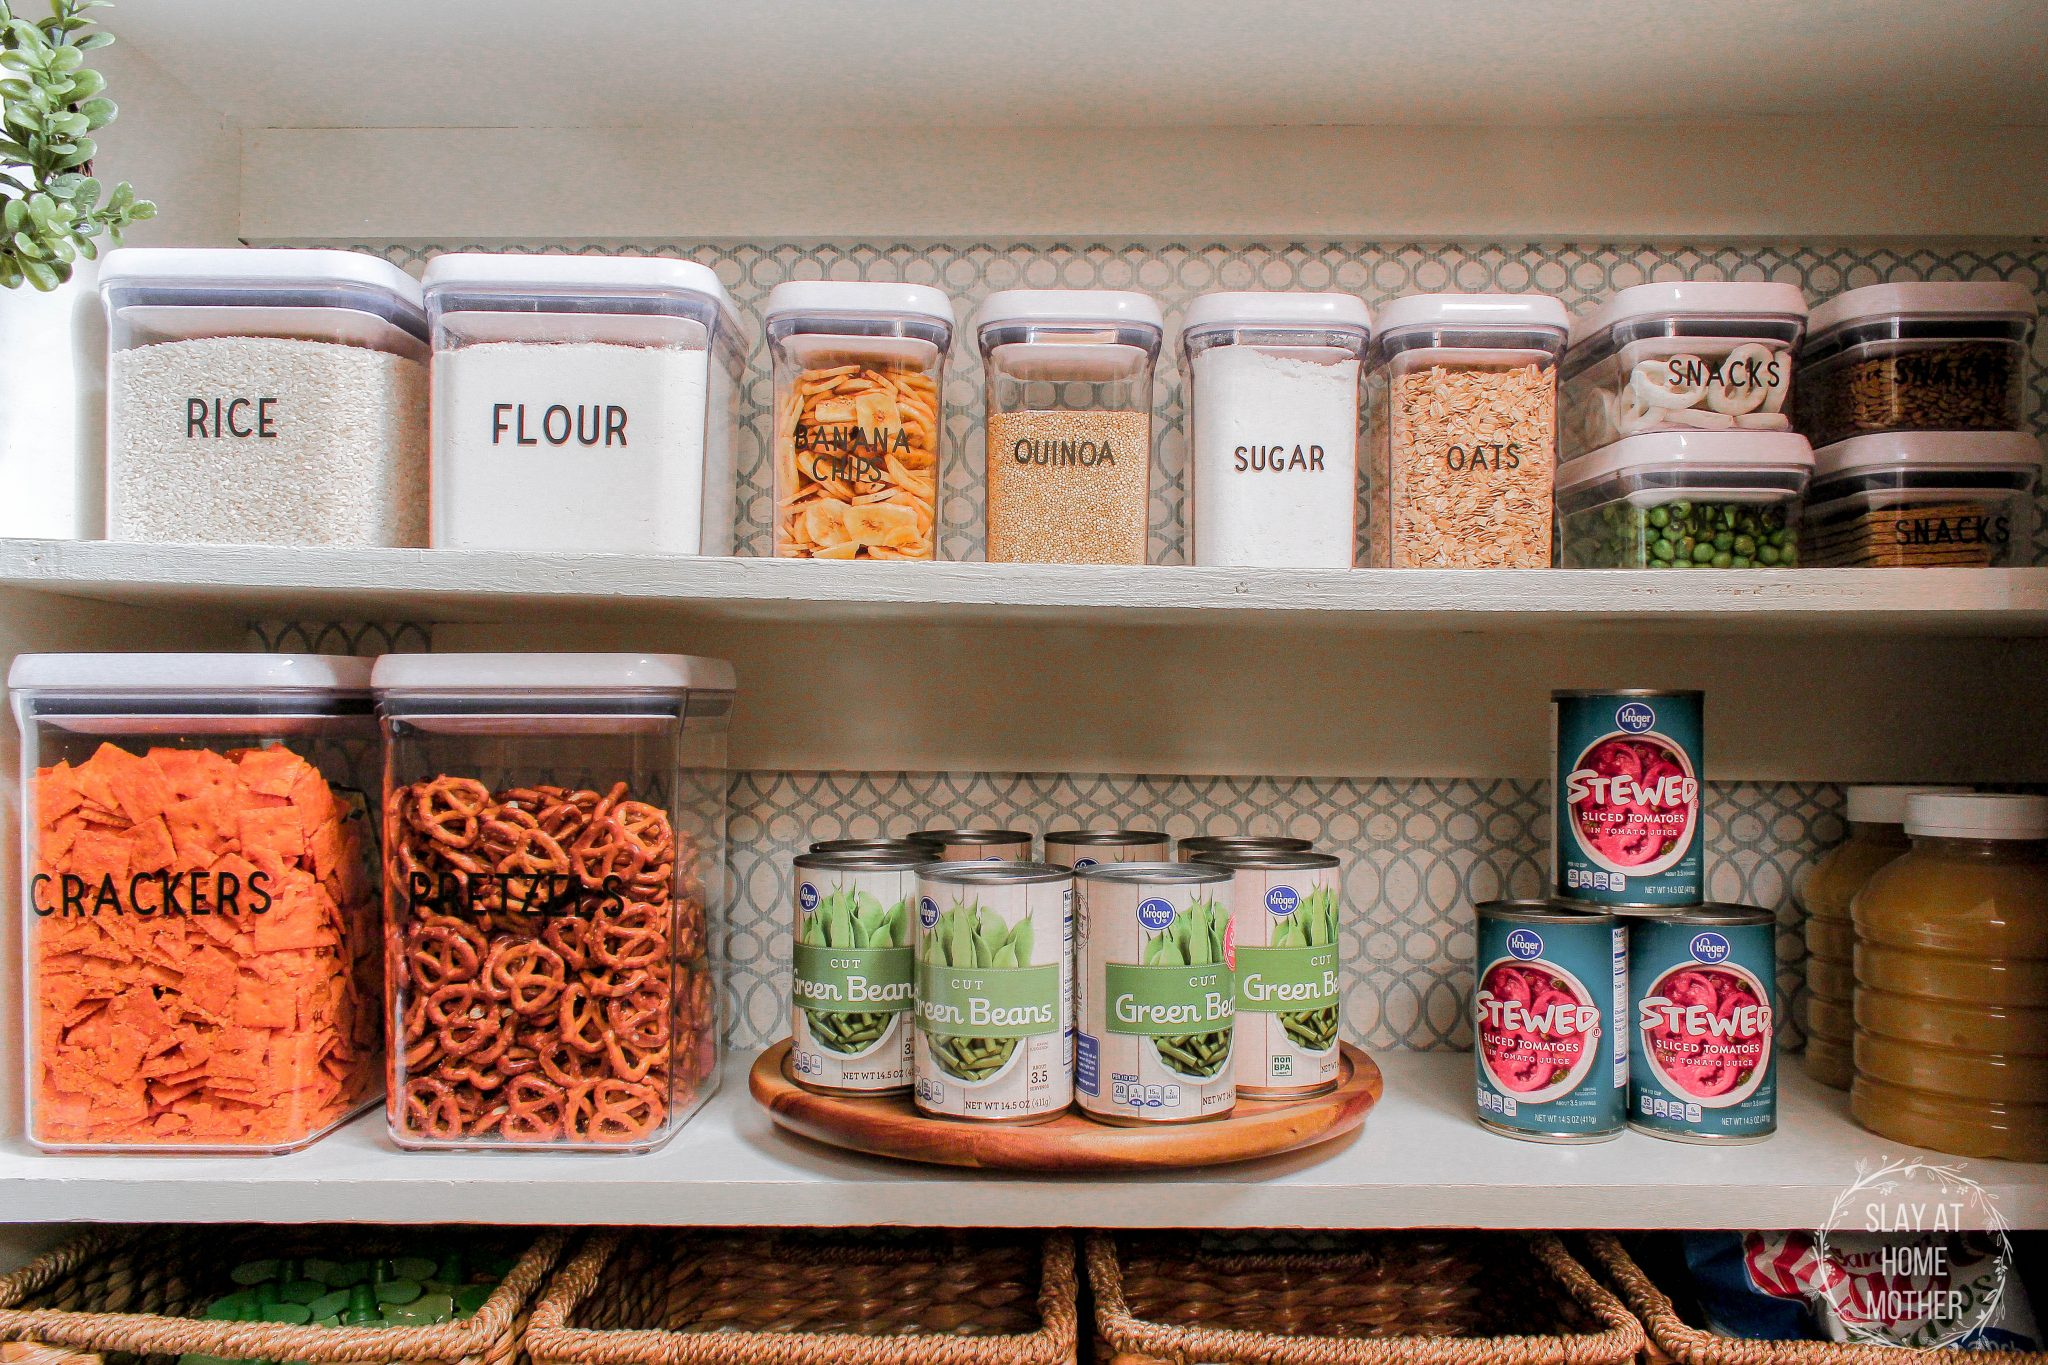 Cans stored on a rotating turntable, dry goods stored in airtight containers